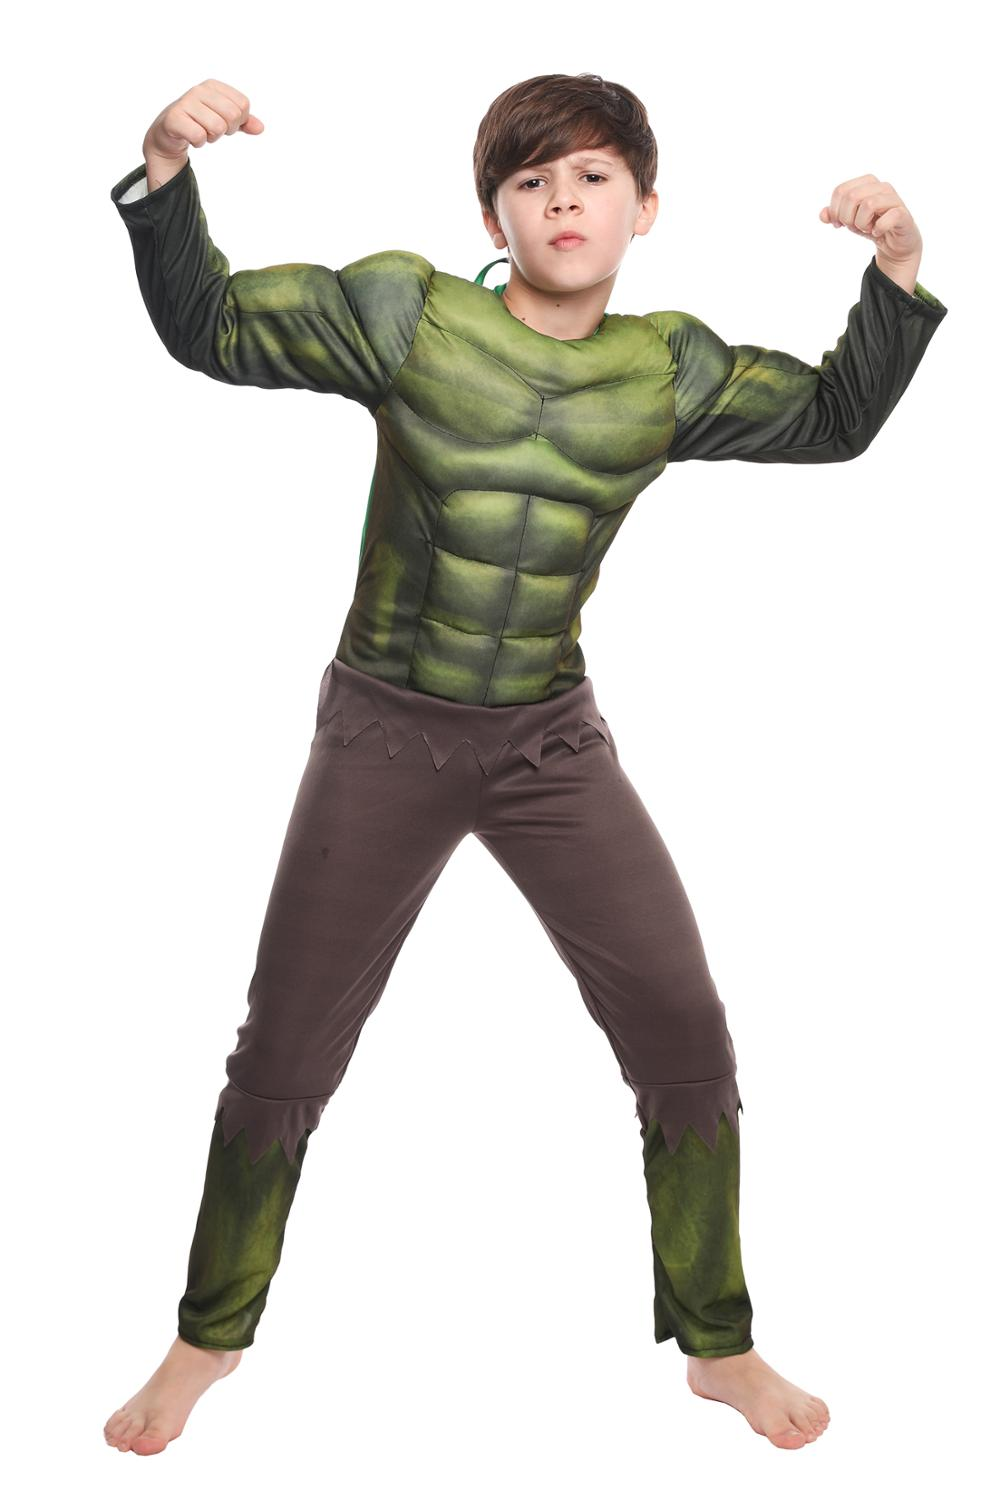 Image 2 - Heroic Hulk Onesies Birthday Party Carnival Clothes Very Cool Gift Avengers Halloween Cosplay Costume For KidsBoys Costumes   -